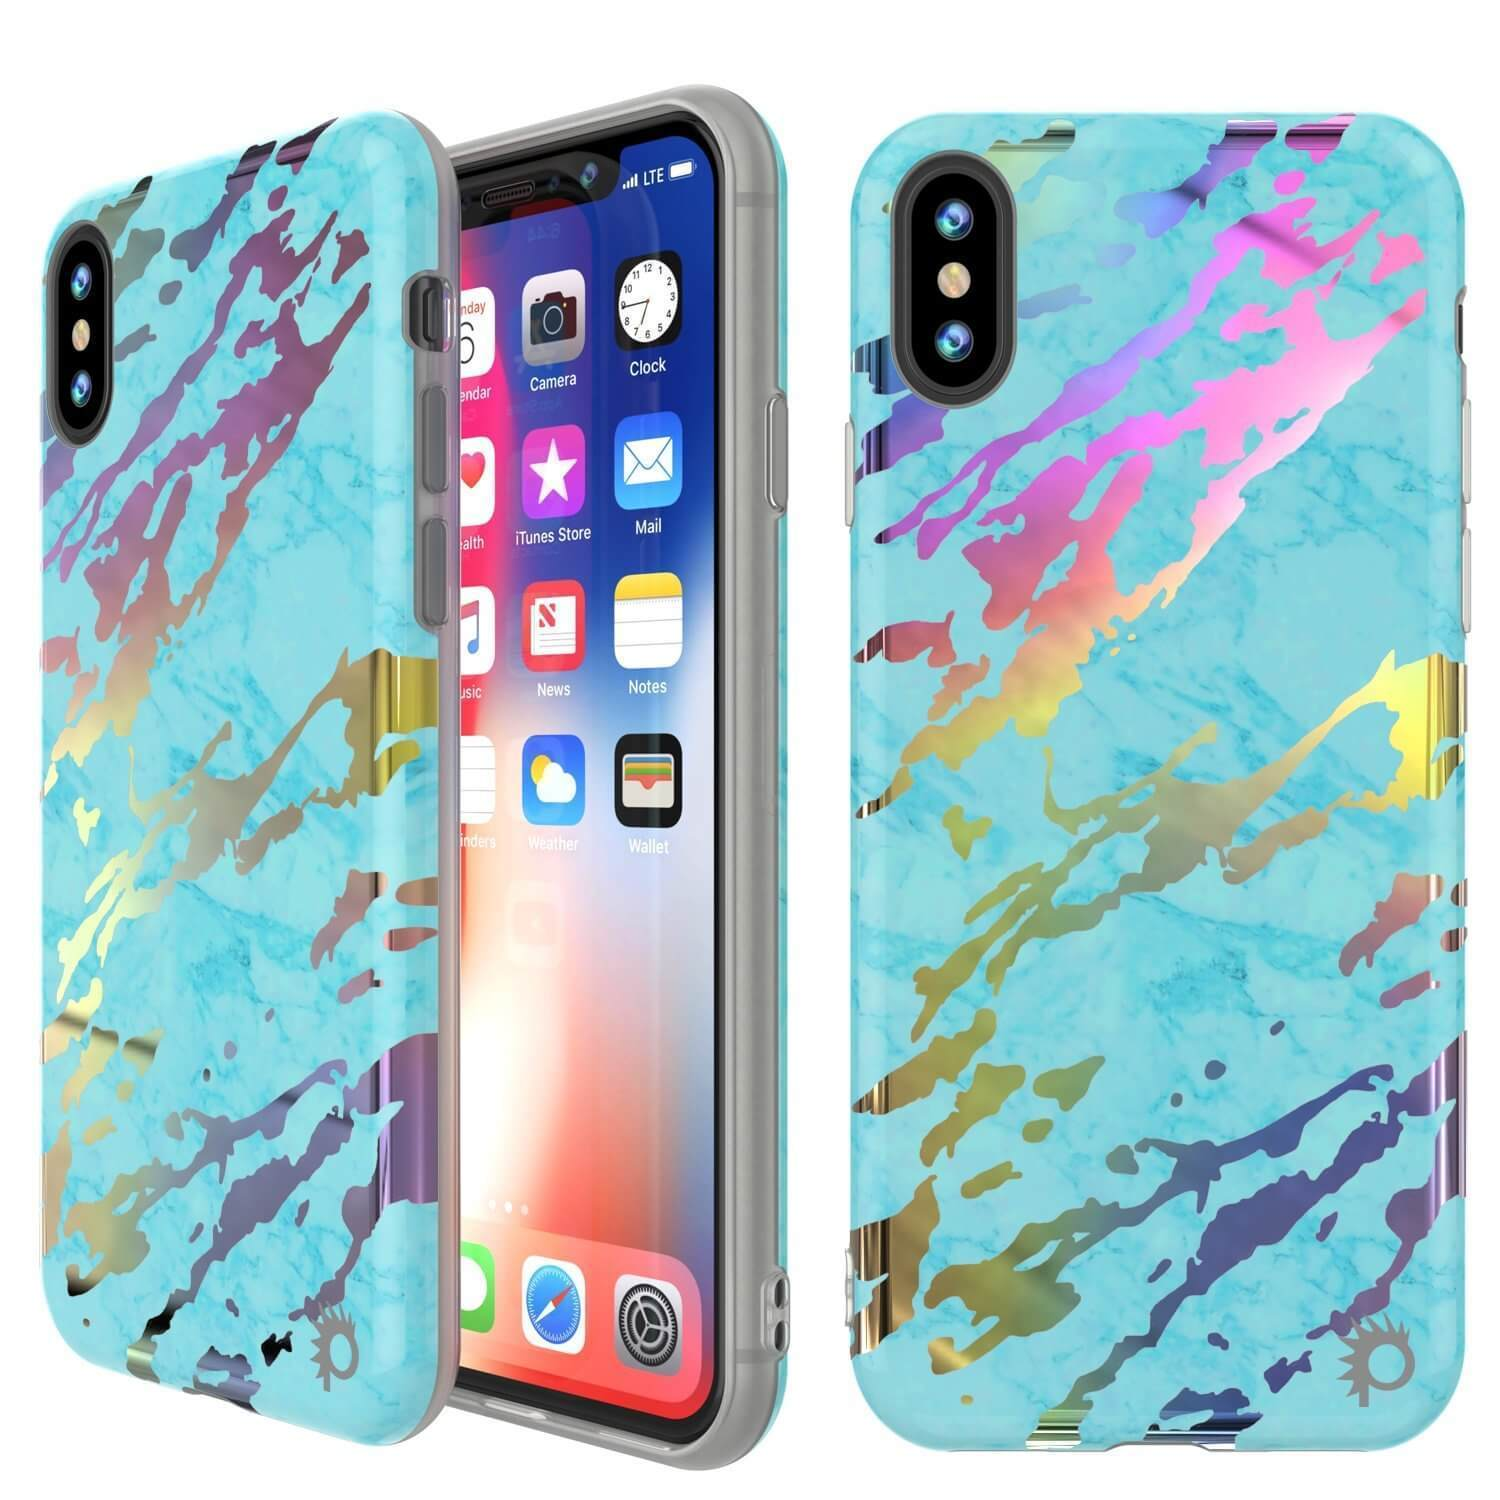 Punkcase iPhone XS Max Marble Case, Protective Full Body Cover W/9H Tempered Glass Screen Protector (Teal Onyx)